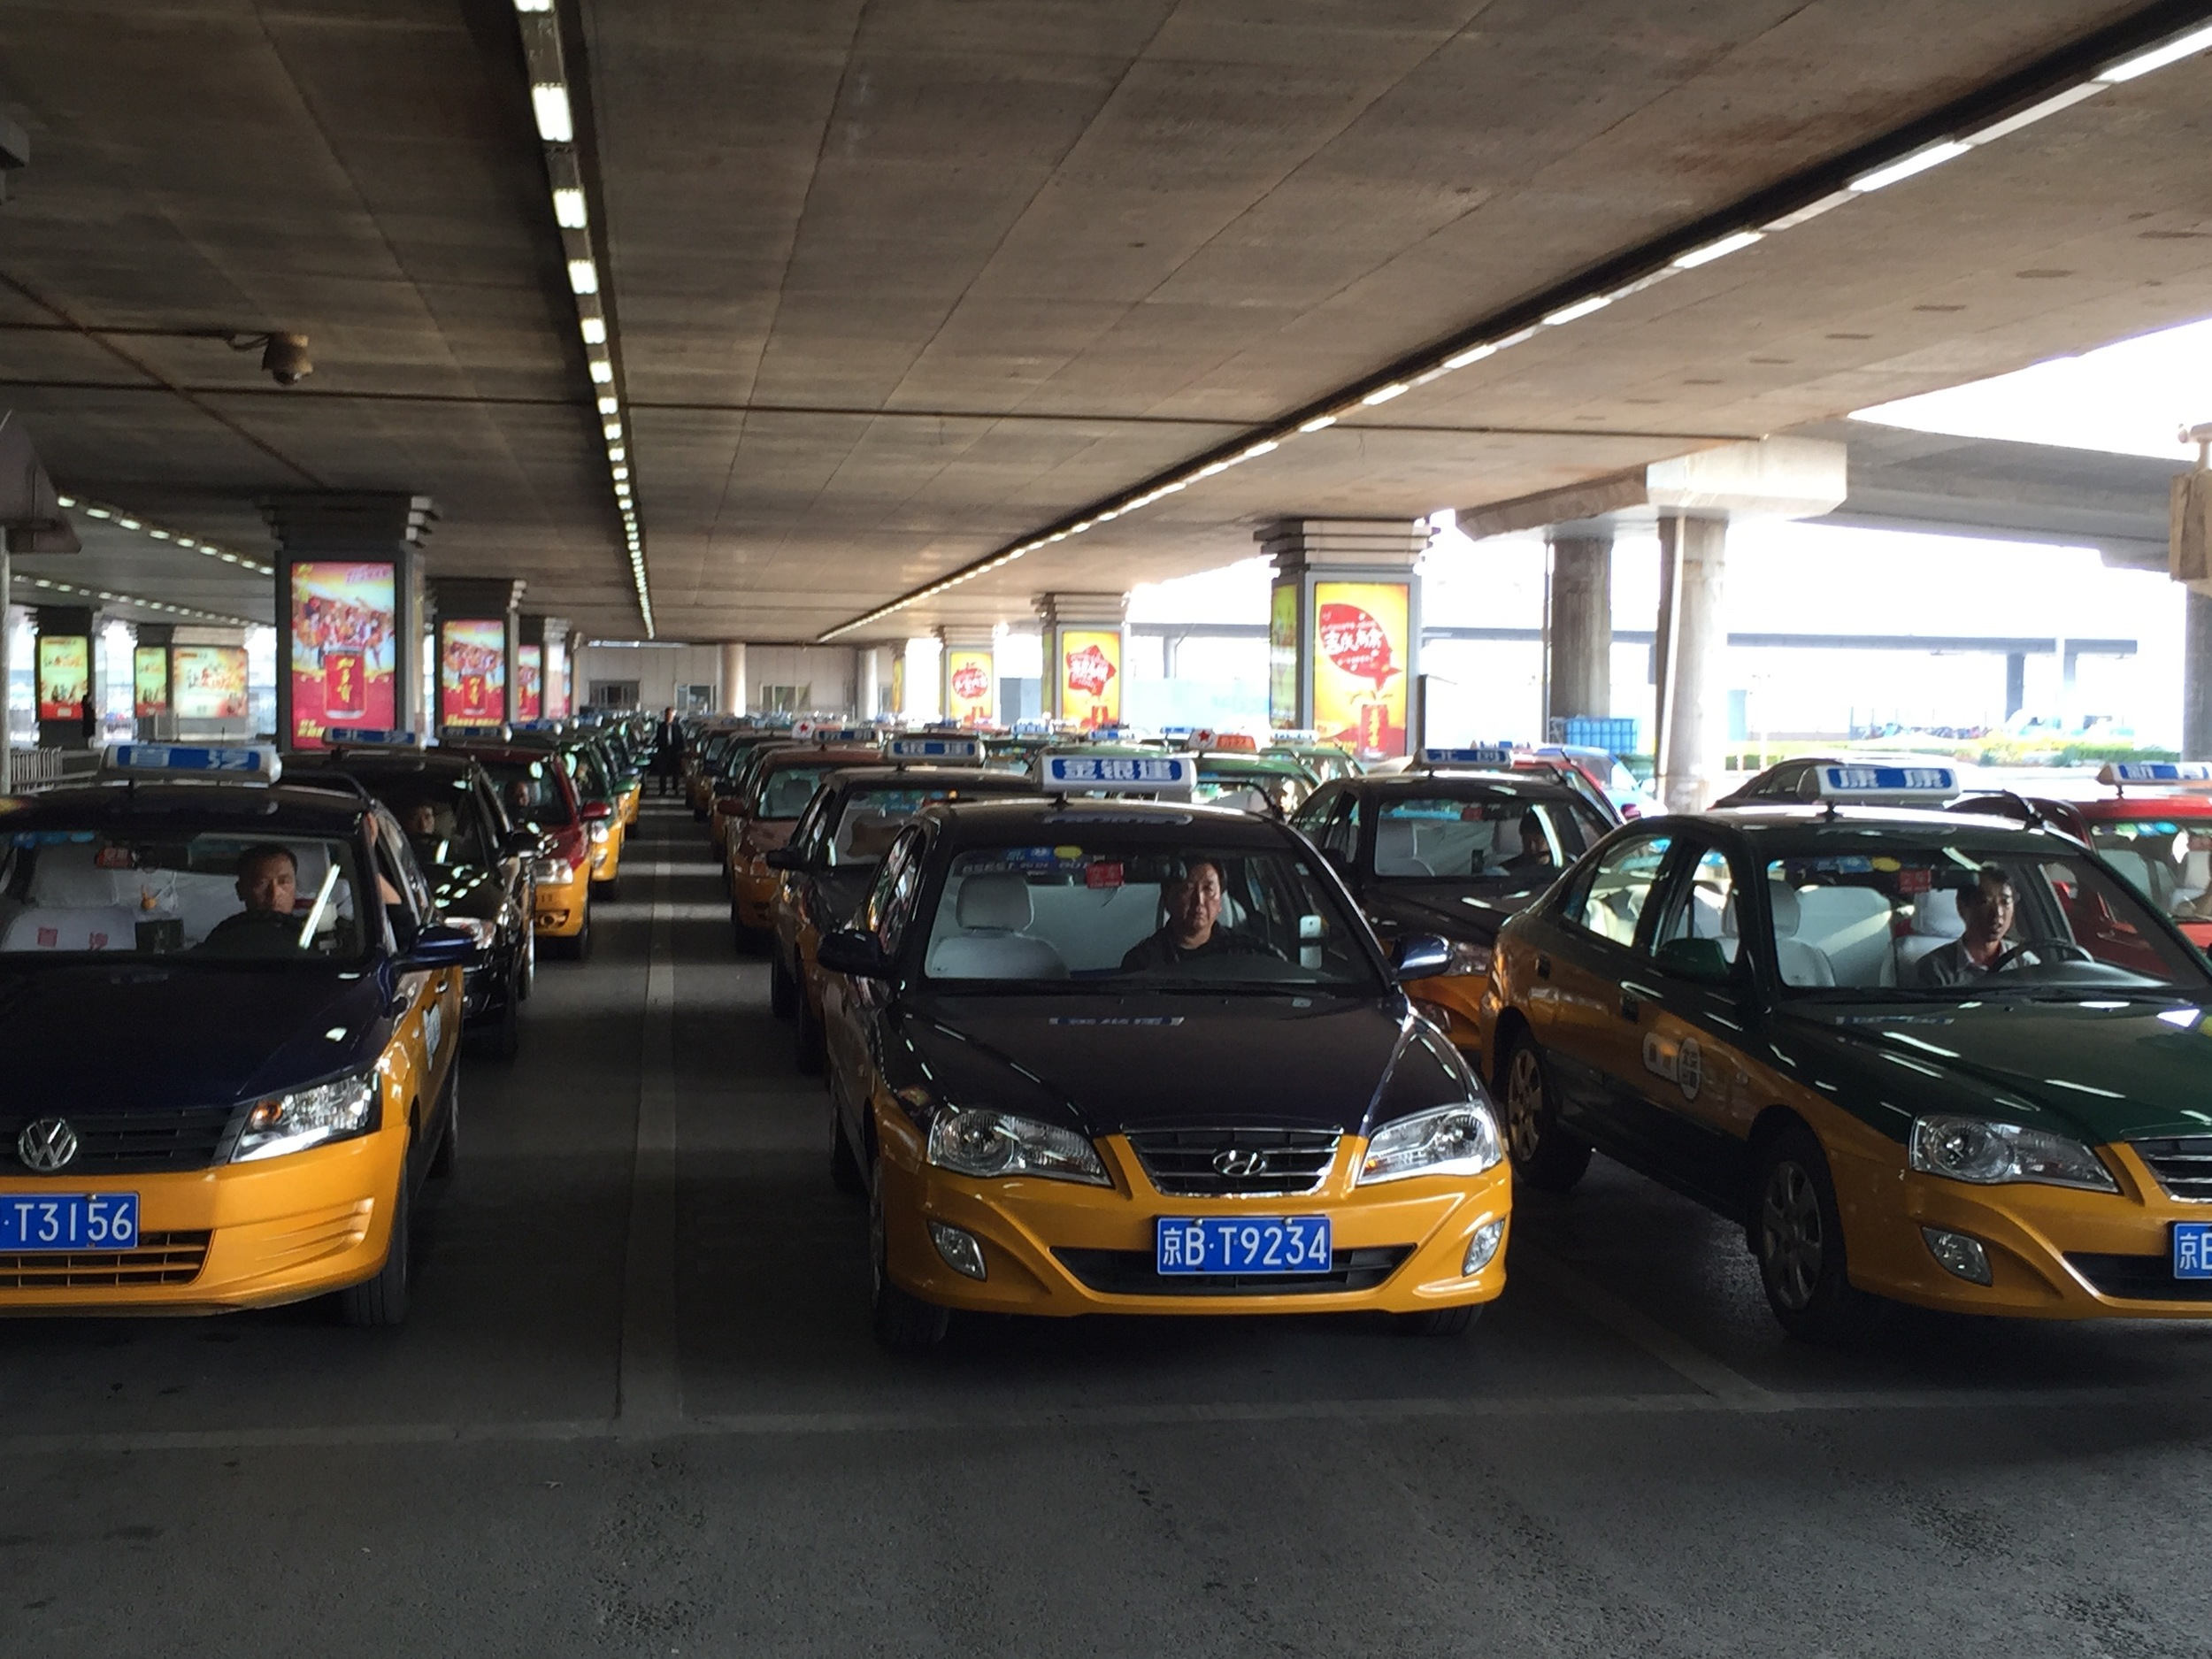 Taxi's lined up at Beijing Airport